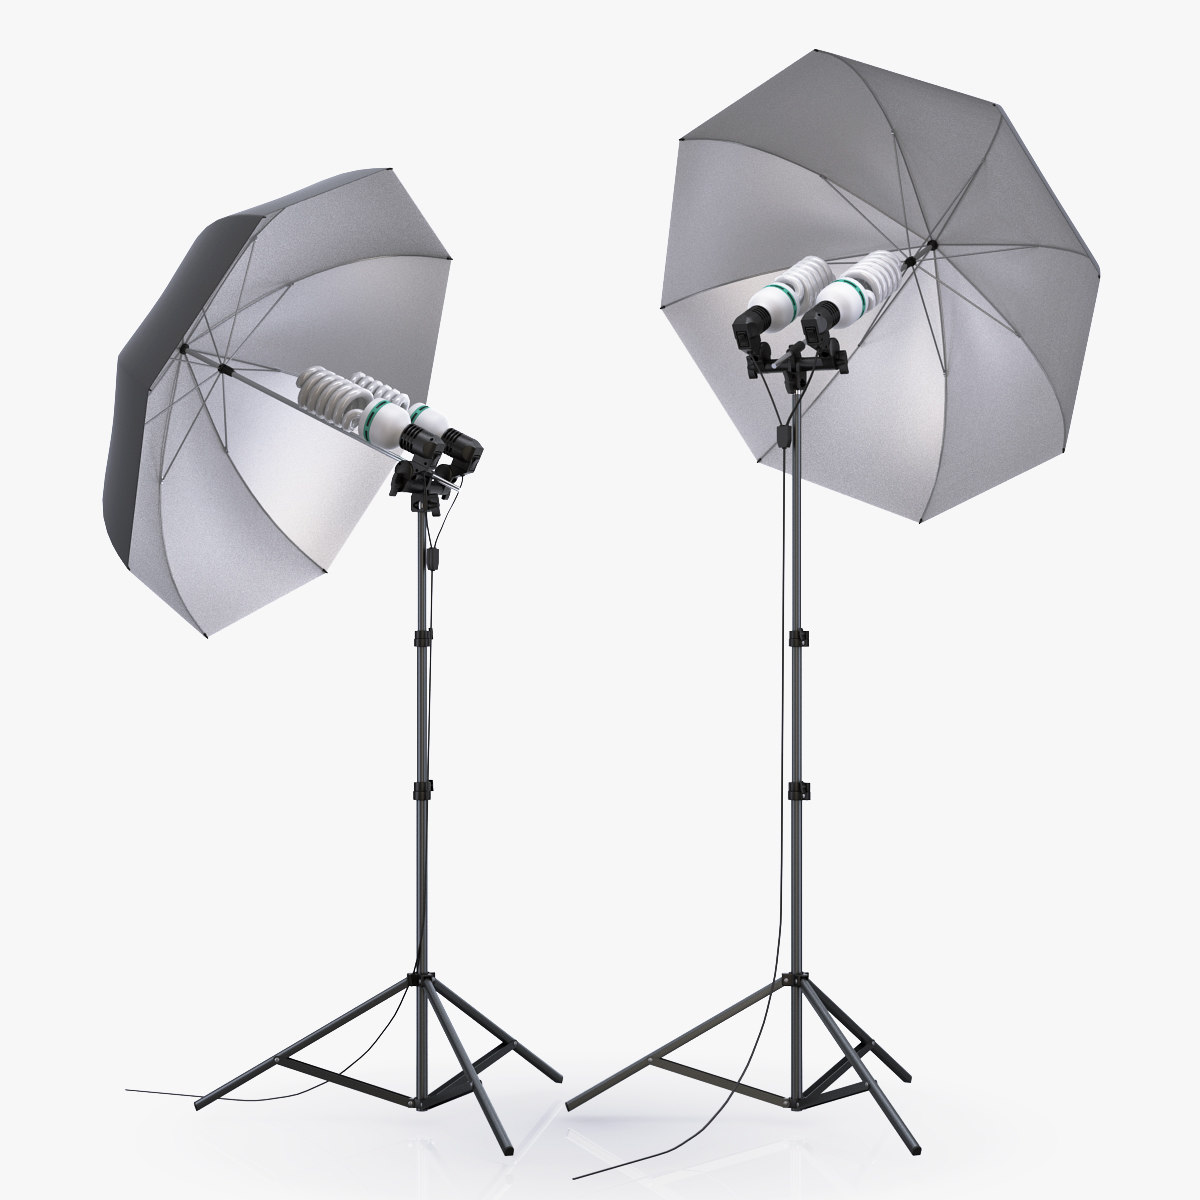 Camera Umbrella Lights